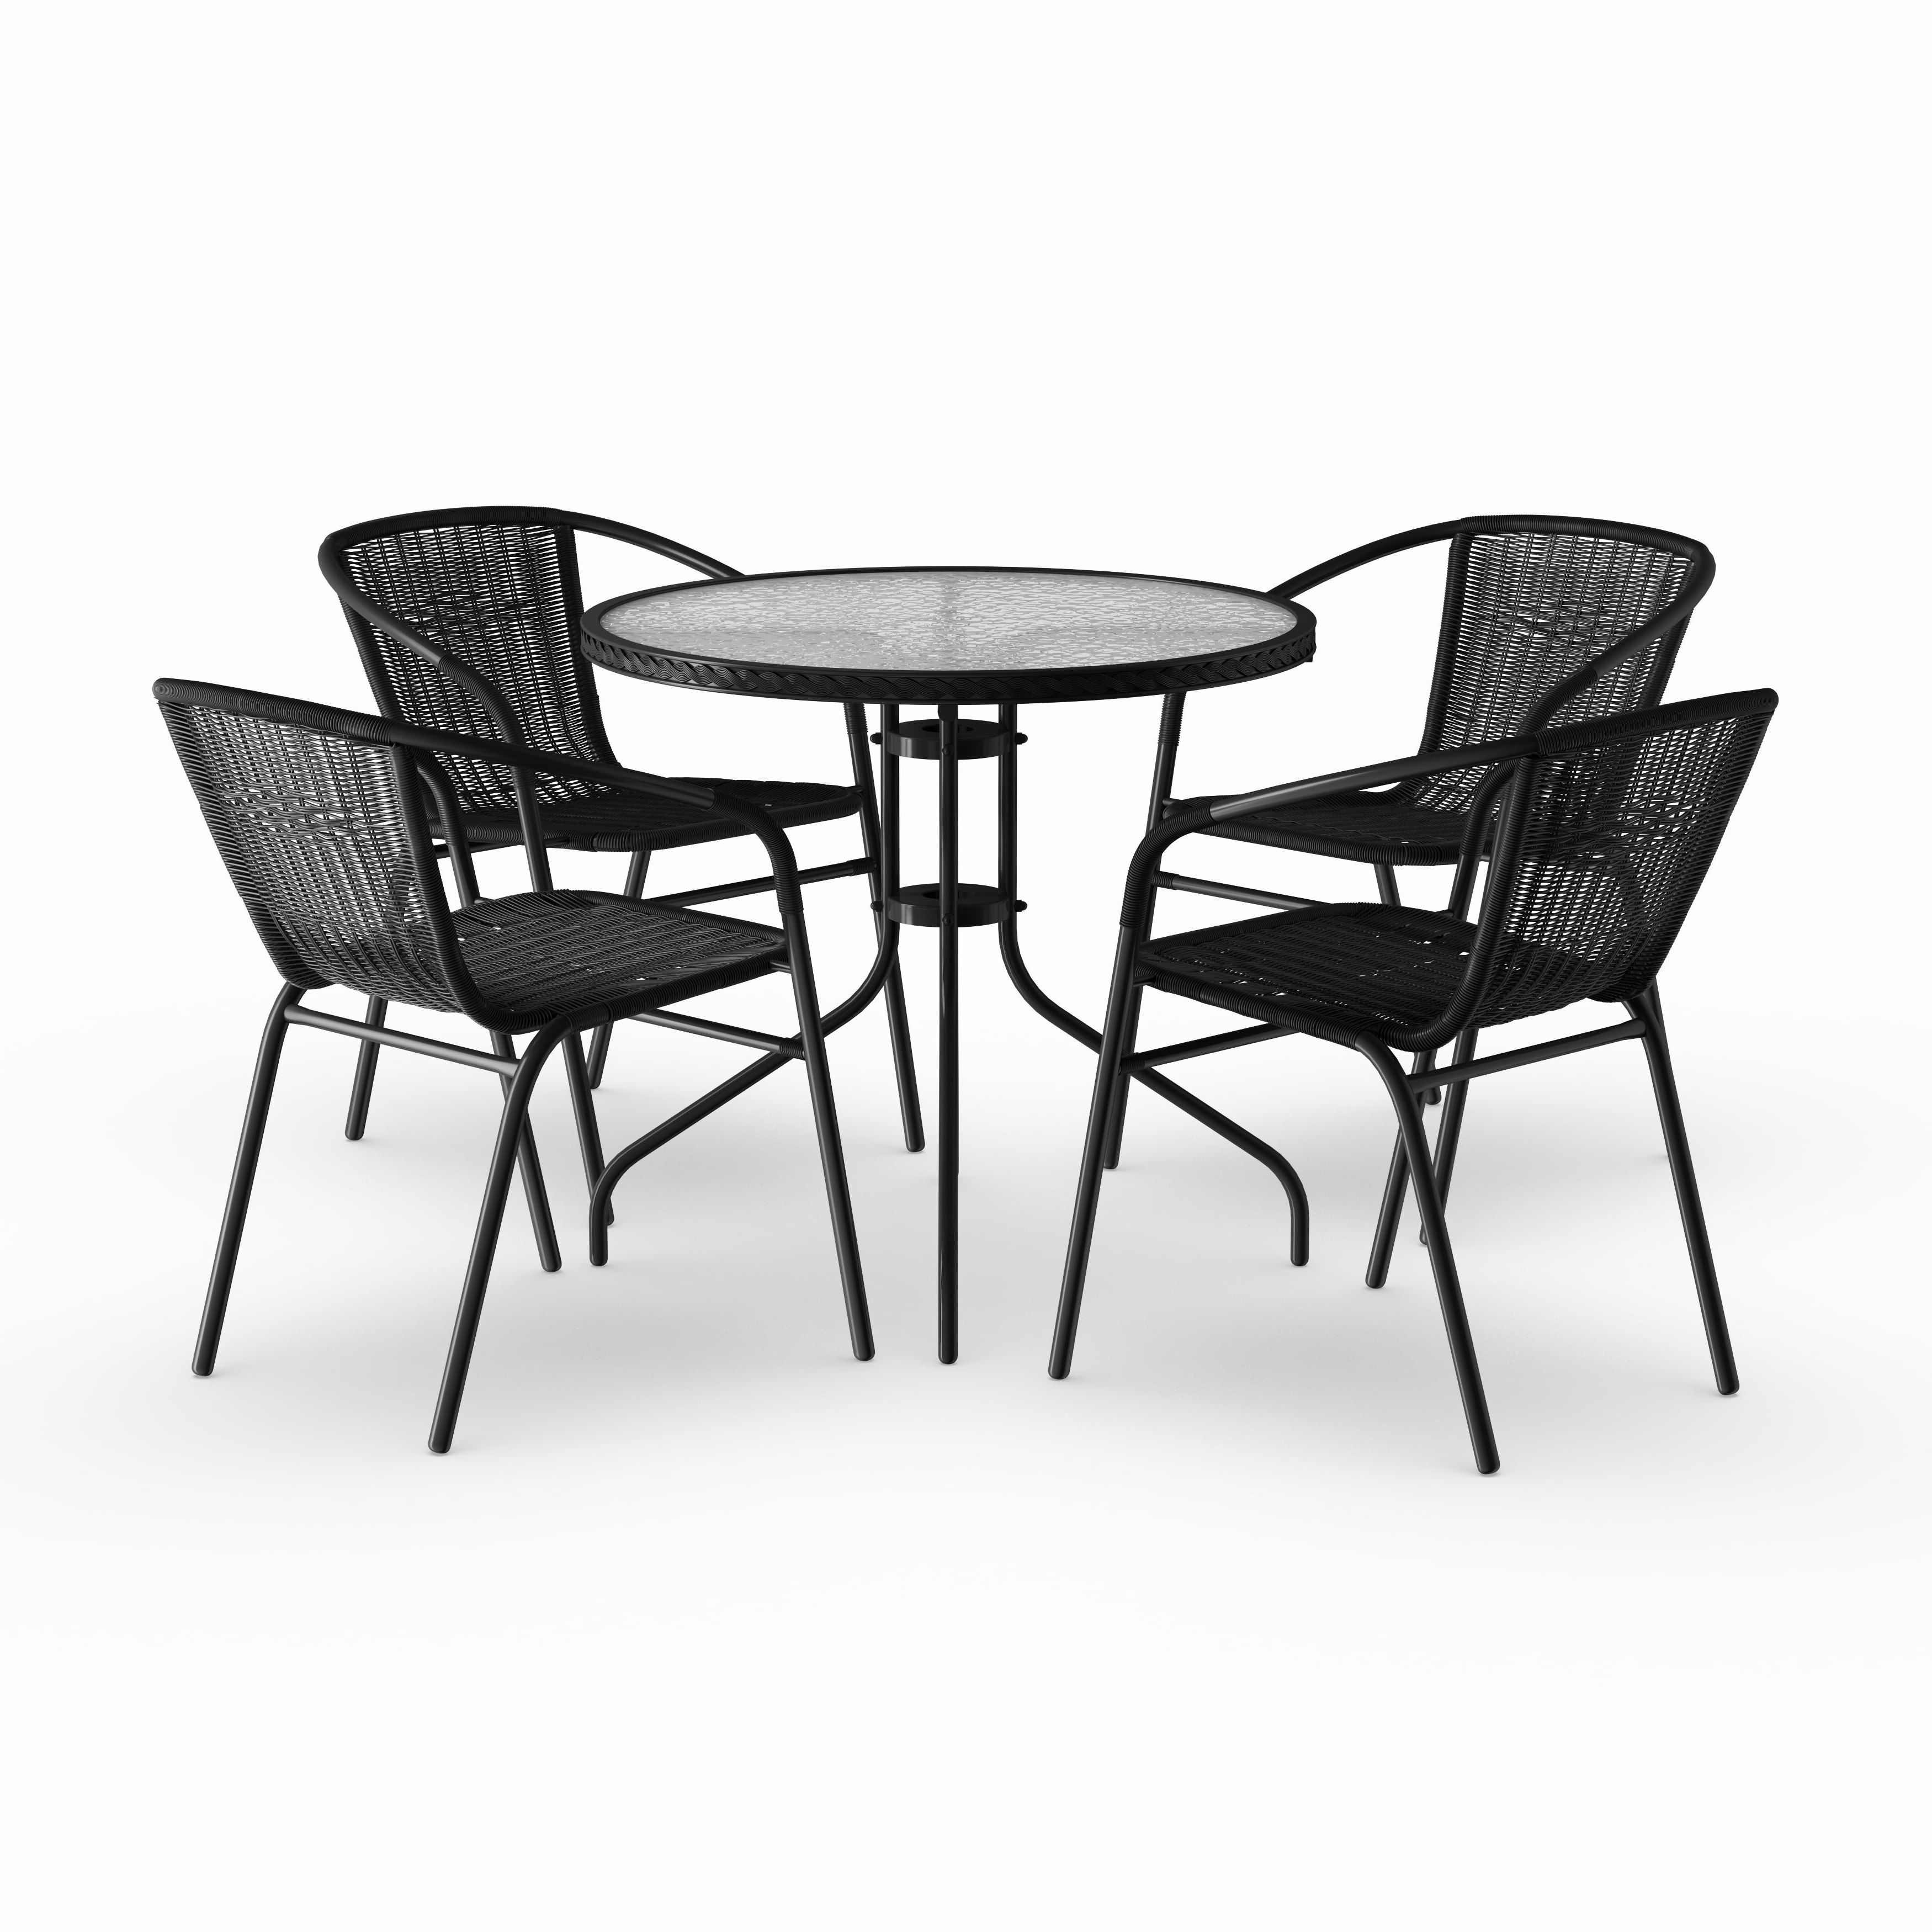 Most Recently Released Debby Small Space 3 Piece Dining Sets Inside Havenside Home Bellport 5 Piece Round Metal/ Glass Table With Rattan Chairs  Set (View 25 of 25)